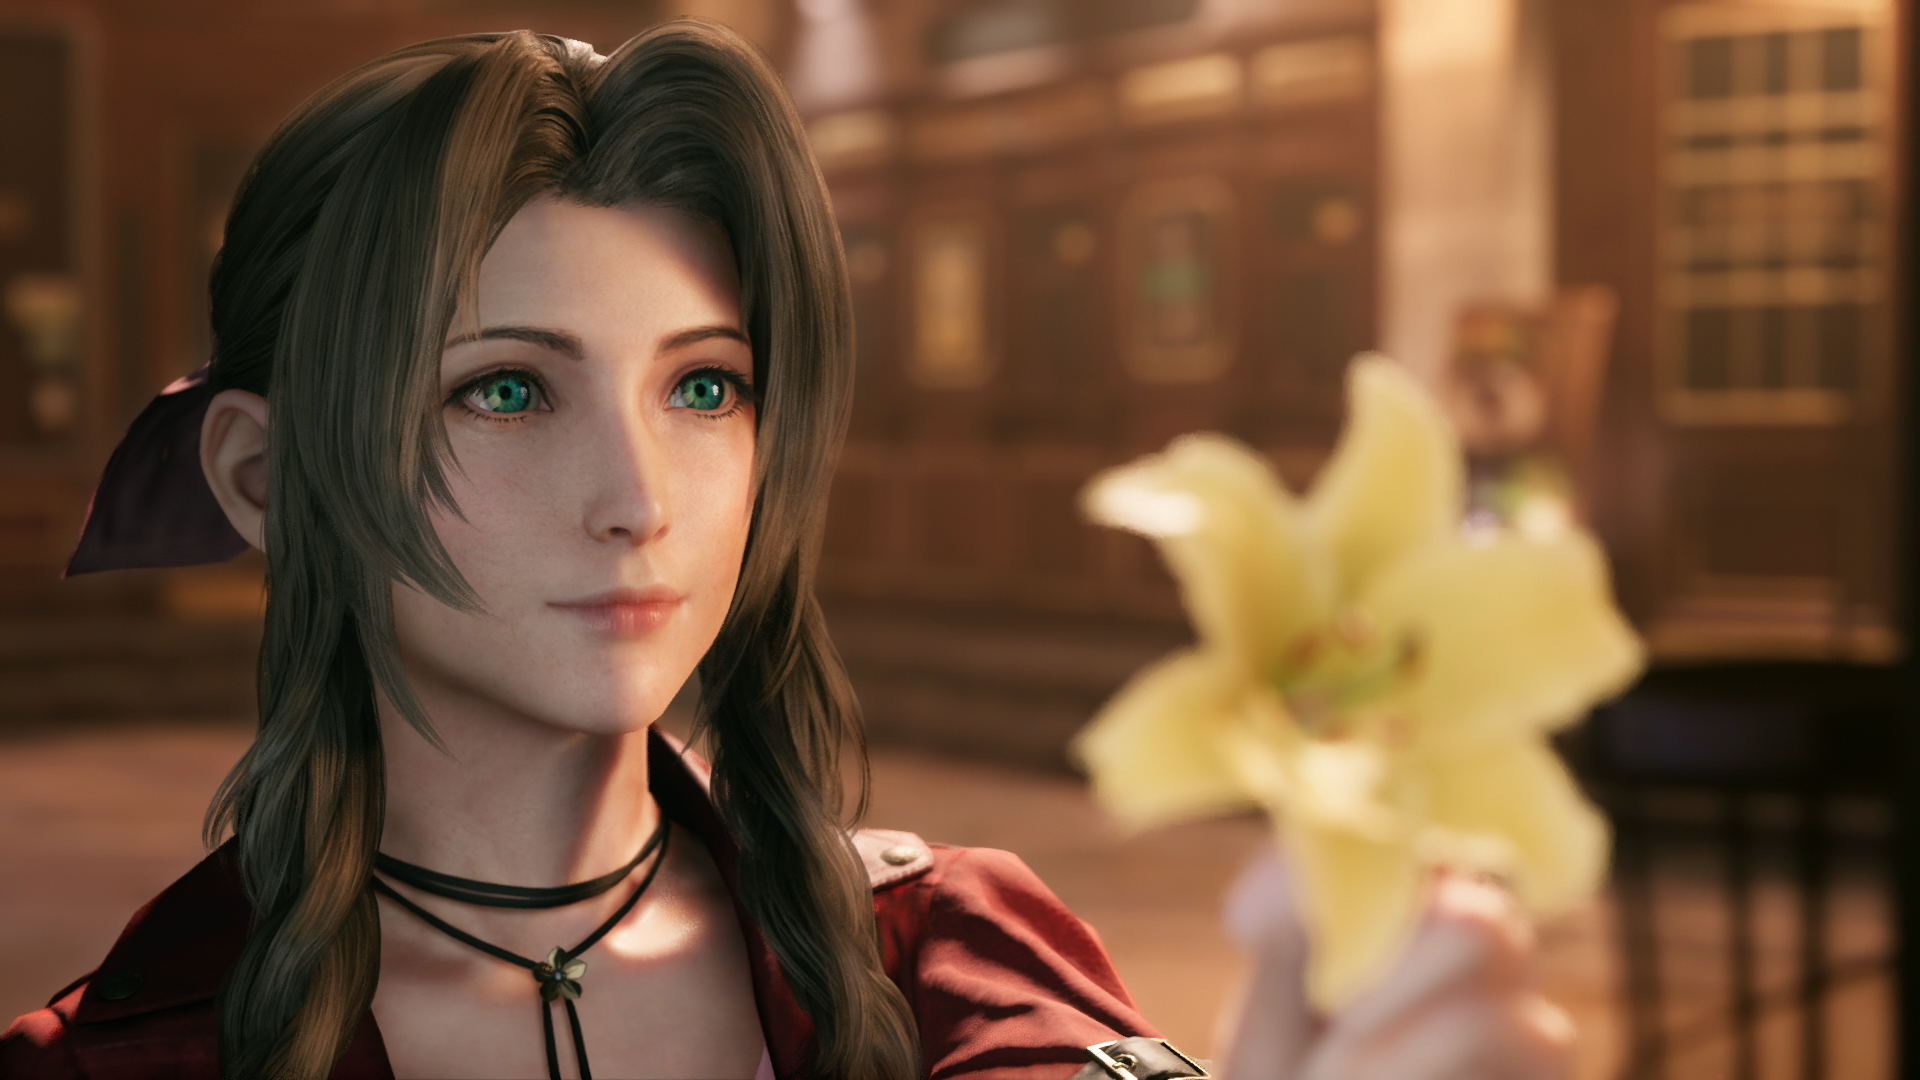 Final Fantasy Vii Remake Choices Guide Consequences For Every